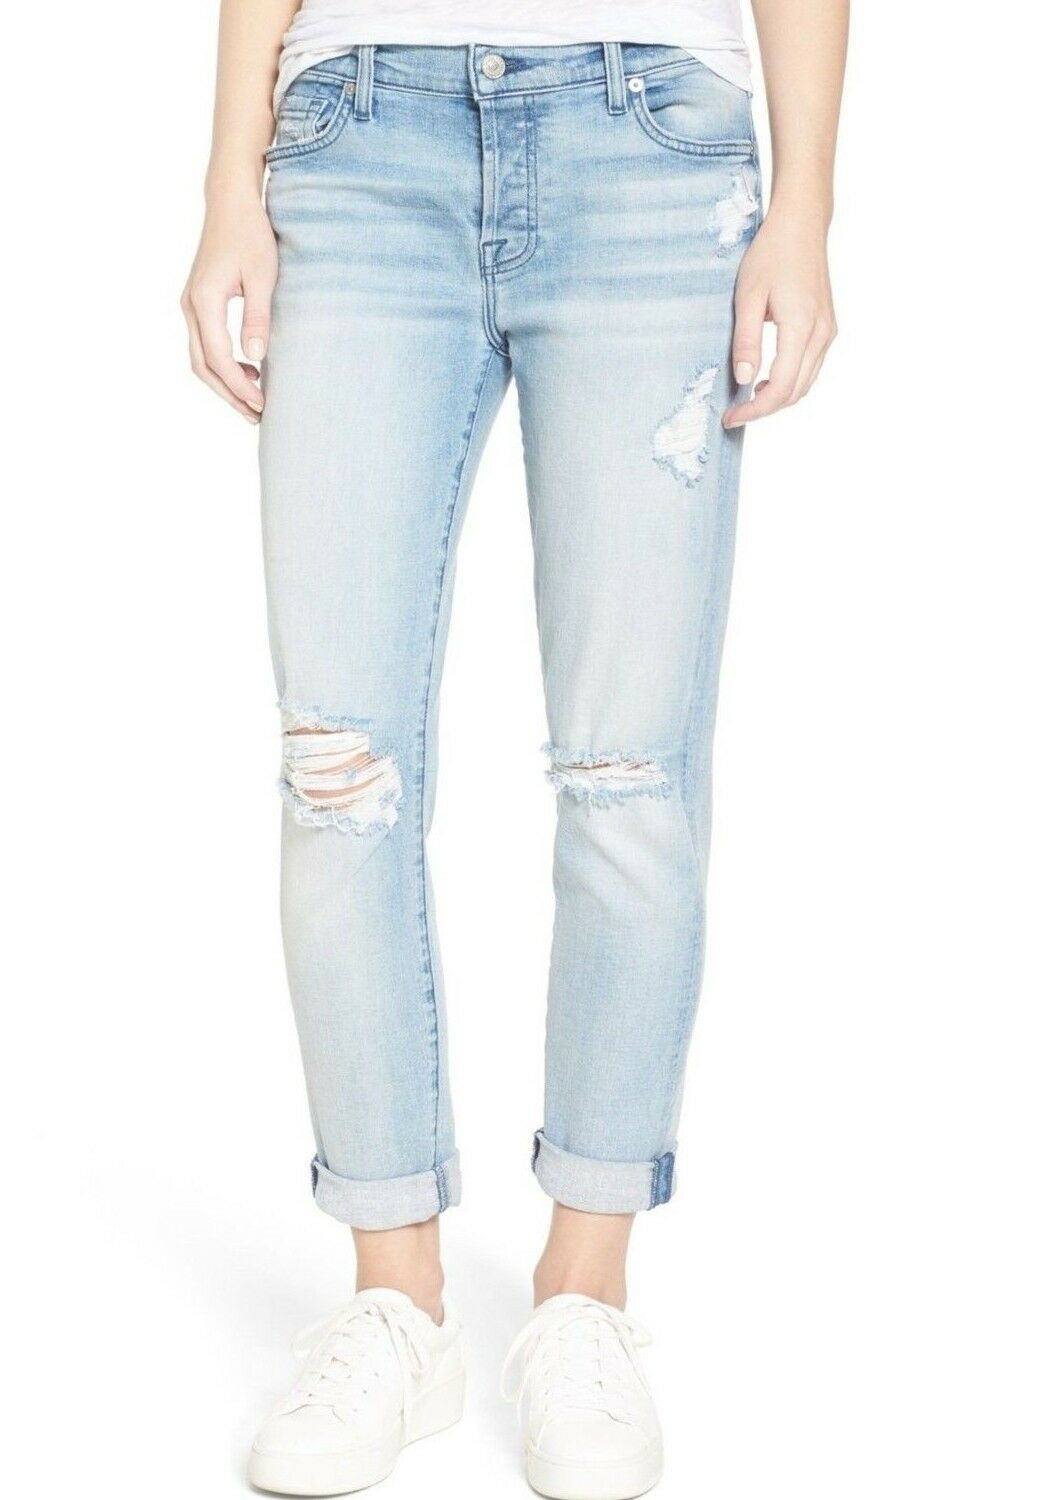 219 NWT 7 FOR ALL MANKIND Sz26 JOSEFINA SKINNY-BOYFRIEND JEANS BRIGHT BRISTOL 2